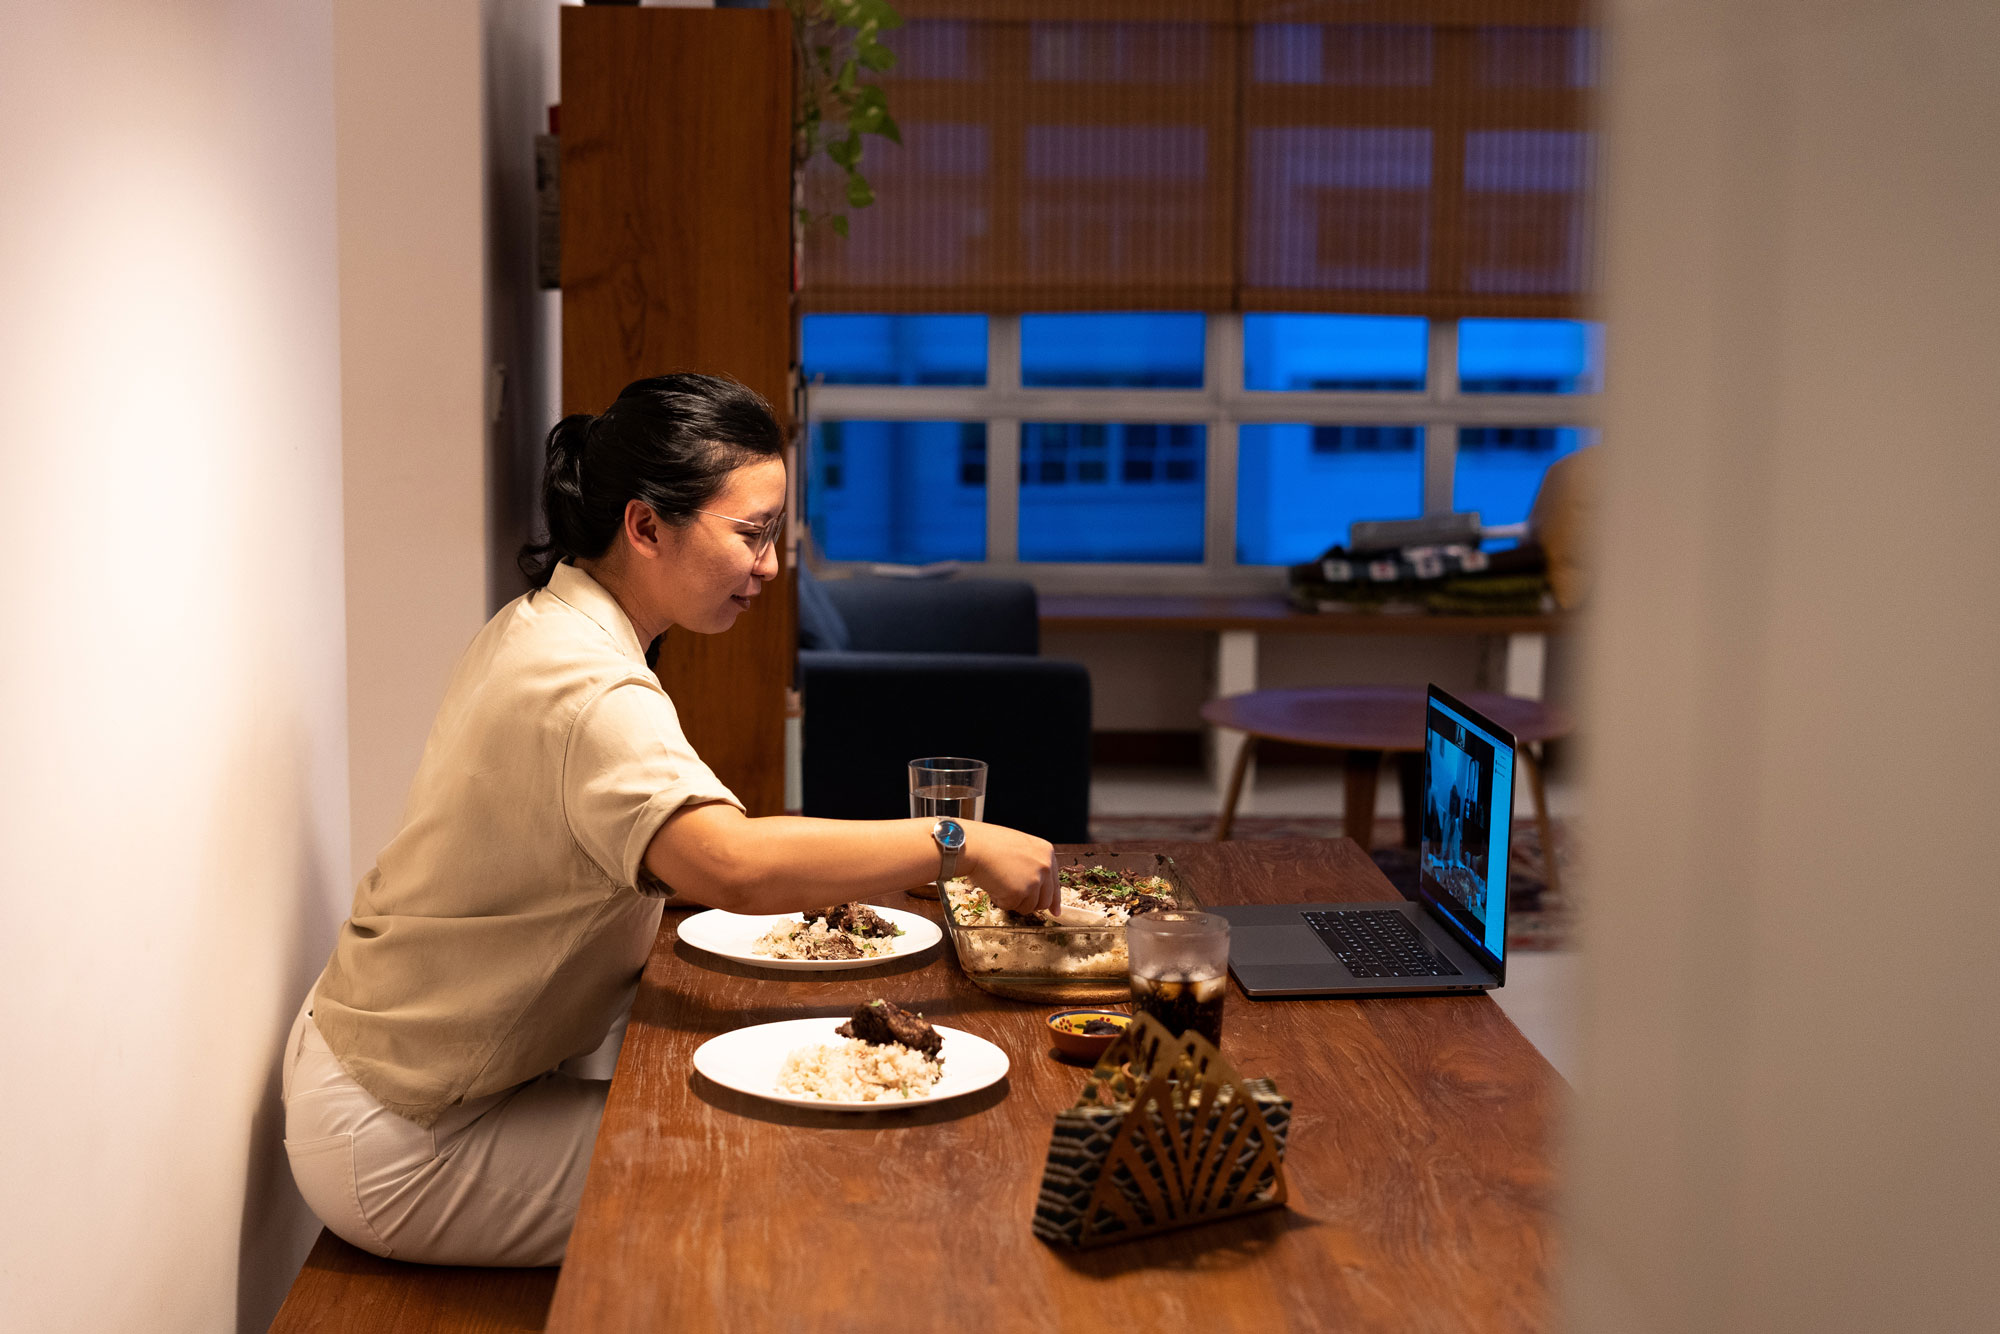 Aqilah Zailan breaks fast at home with her parents over a video call in Singapore on April 25.